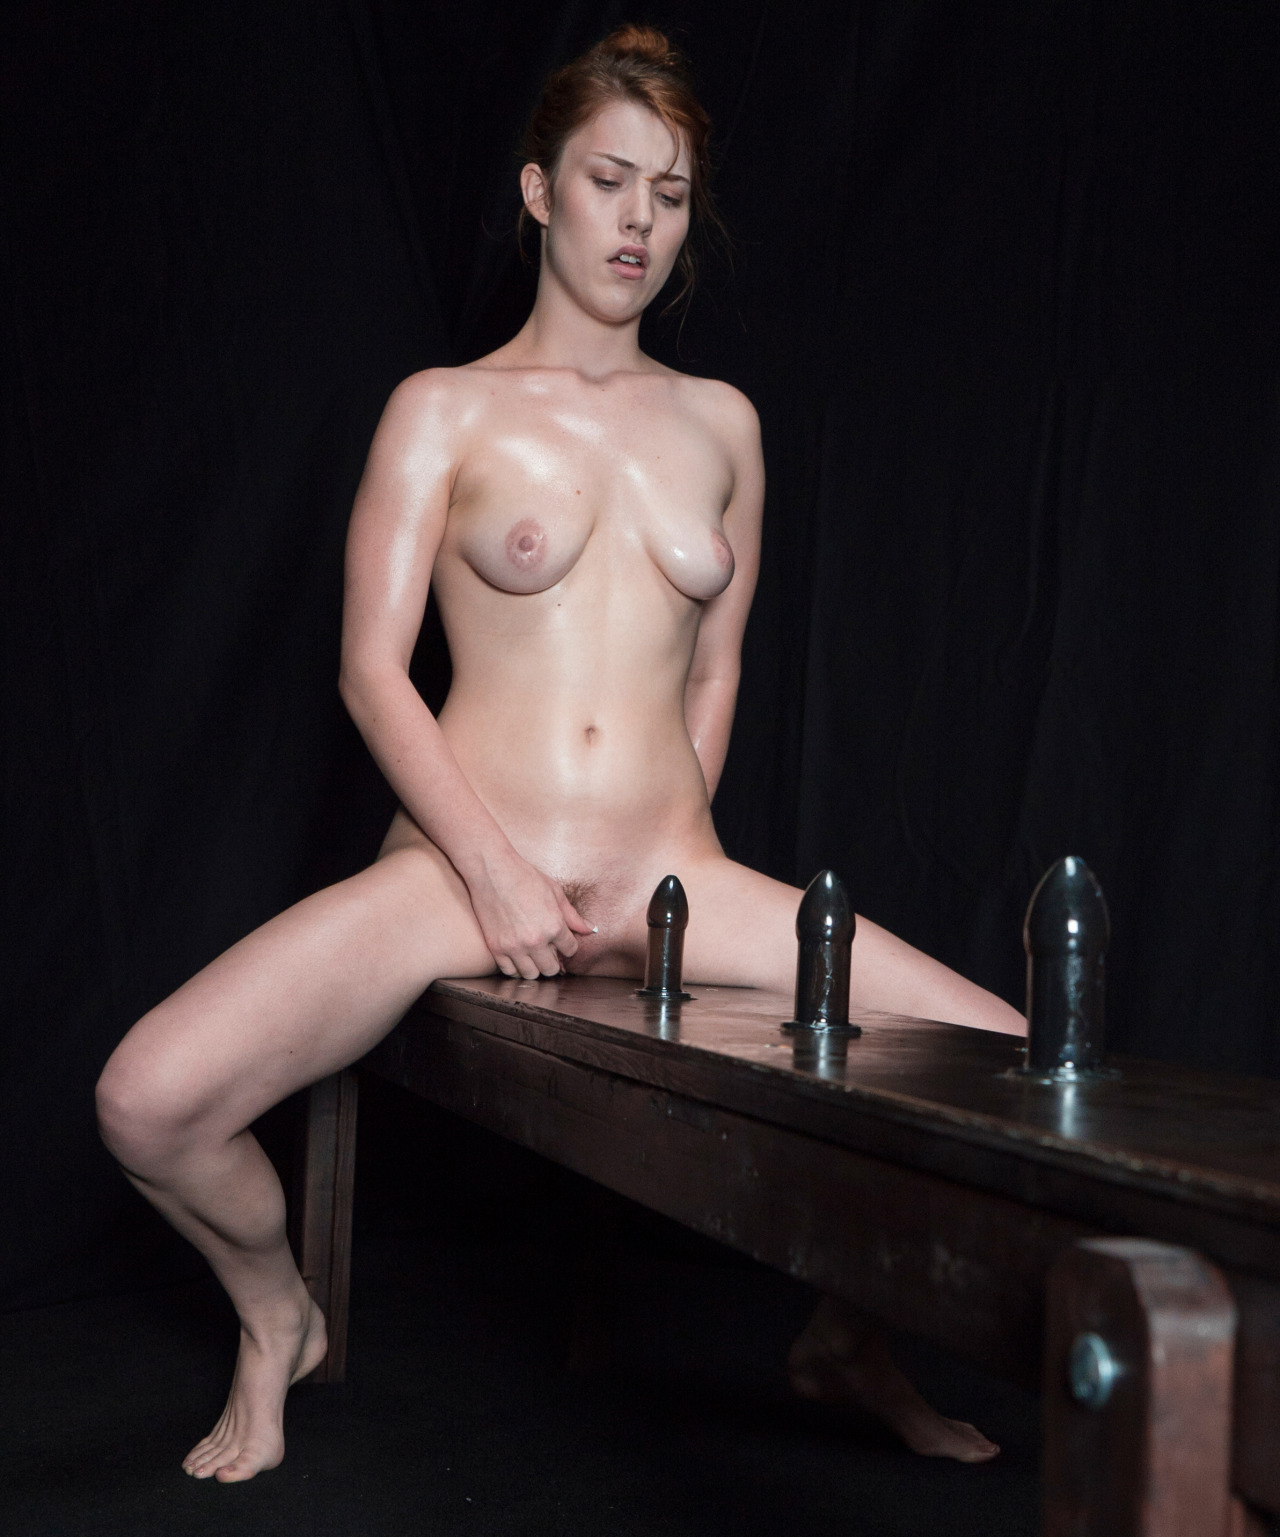 female nude with dildo